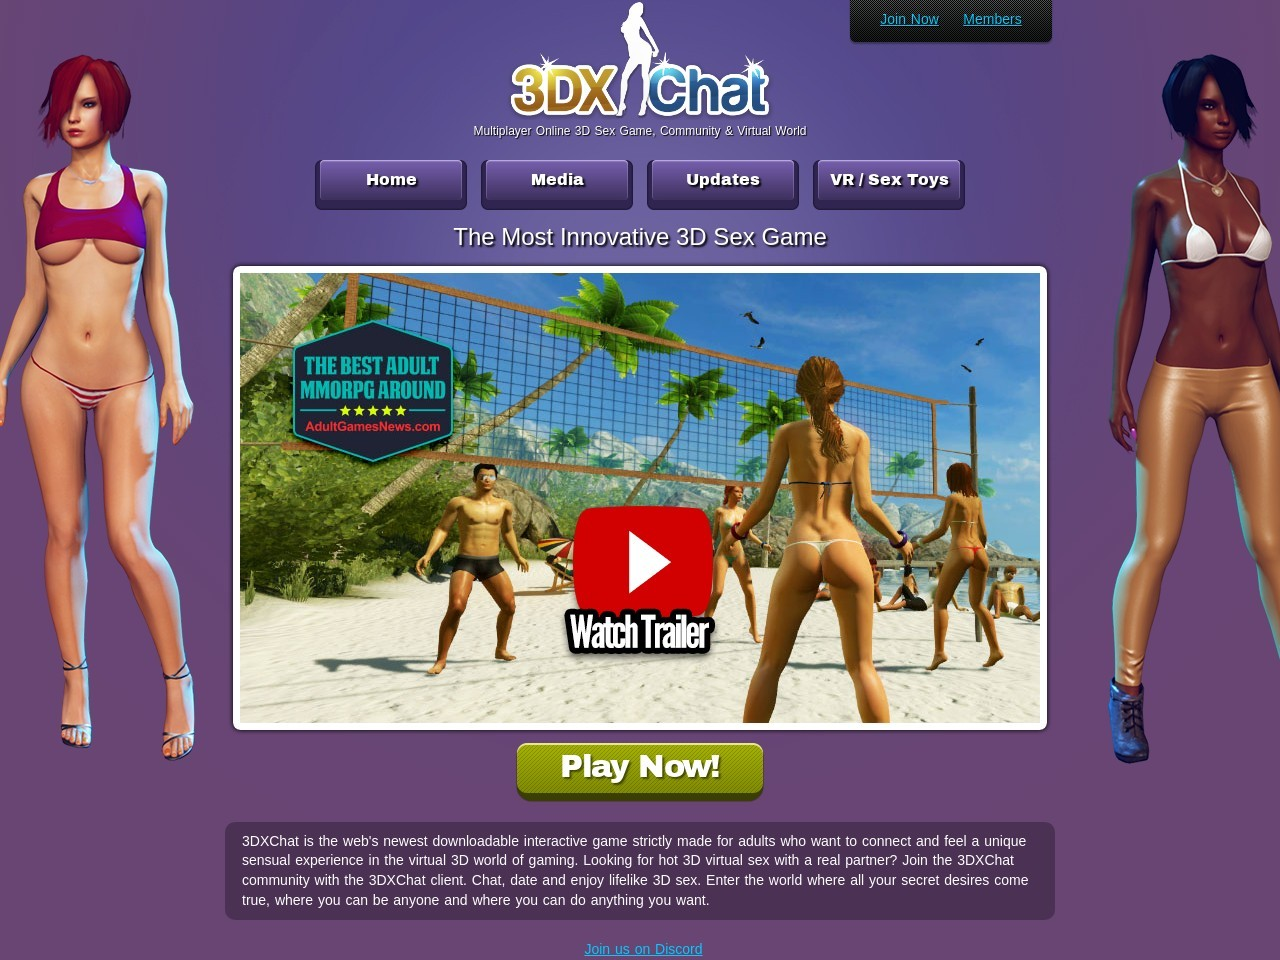 3DXChat - Multiplayer 3D Sex Game